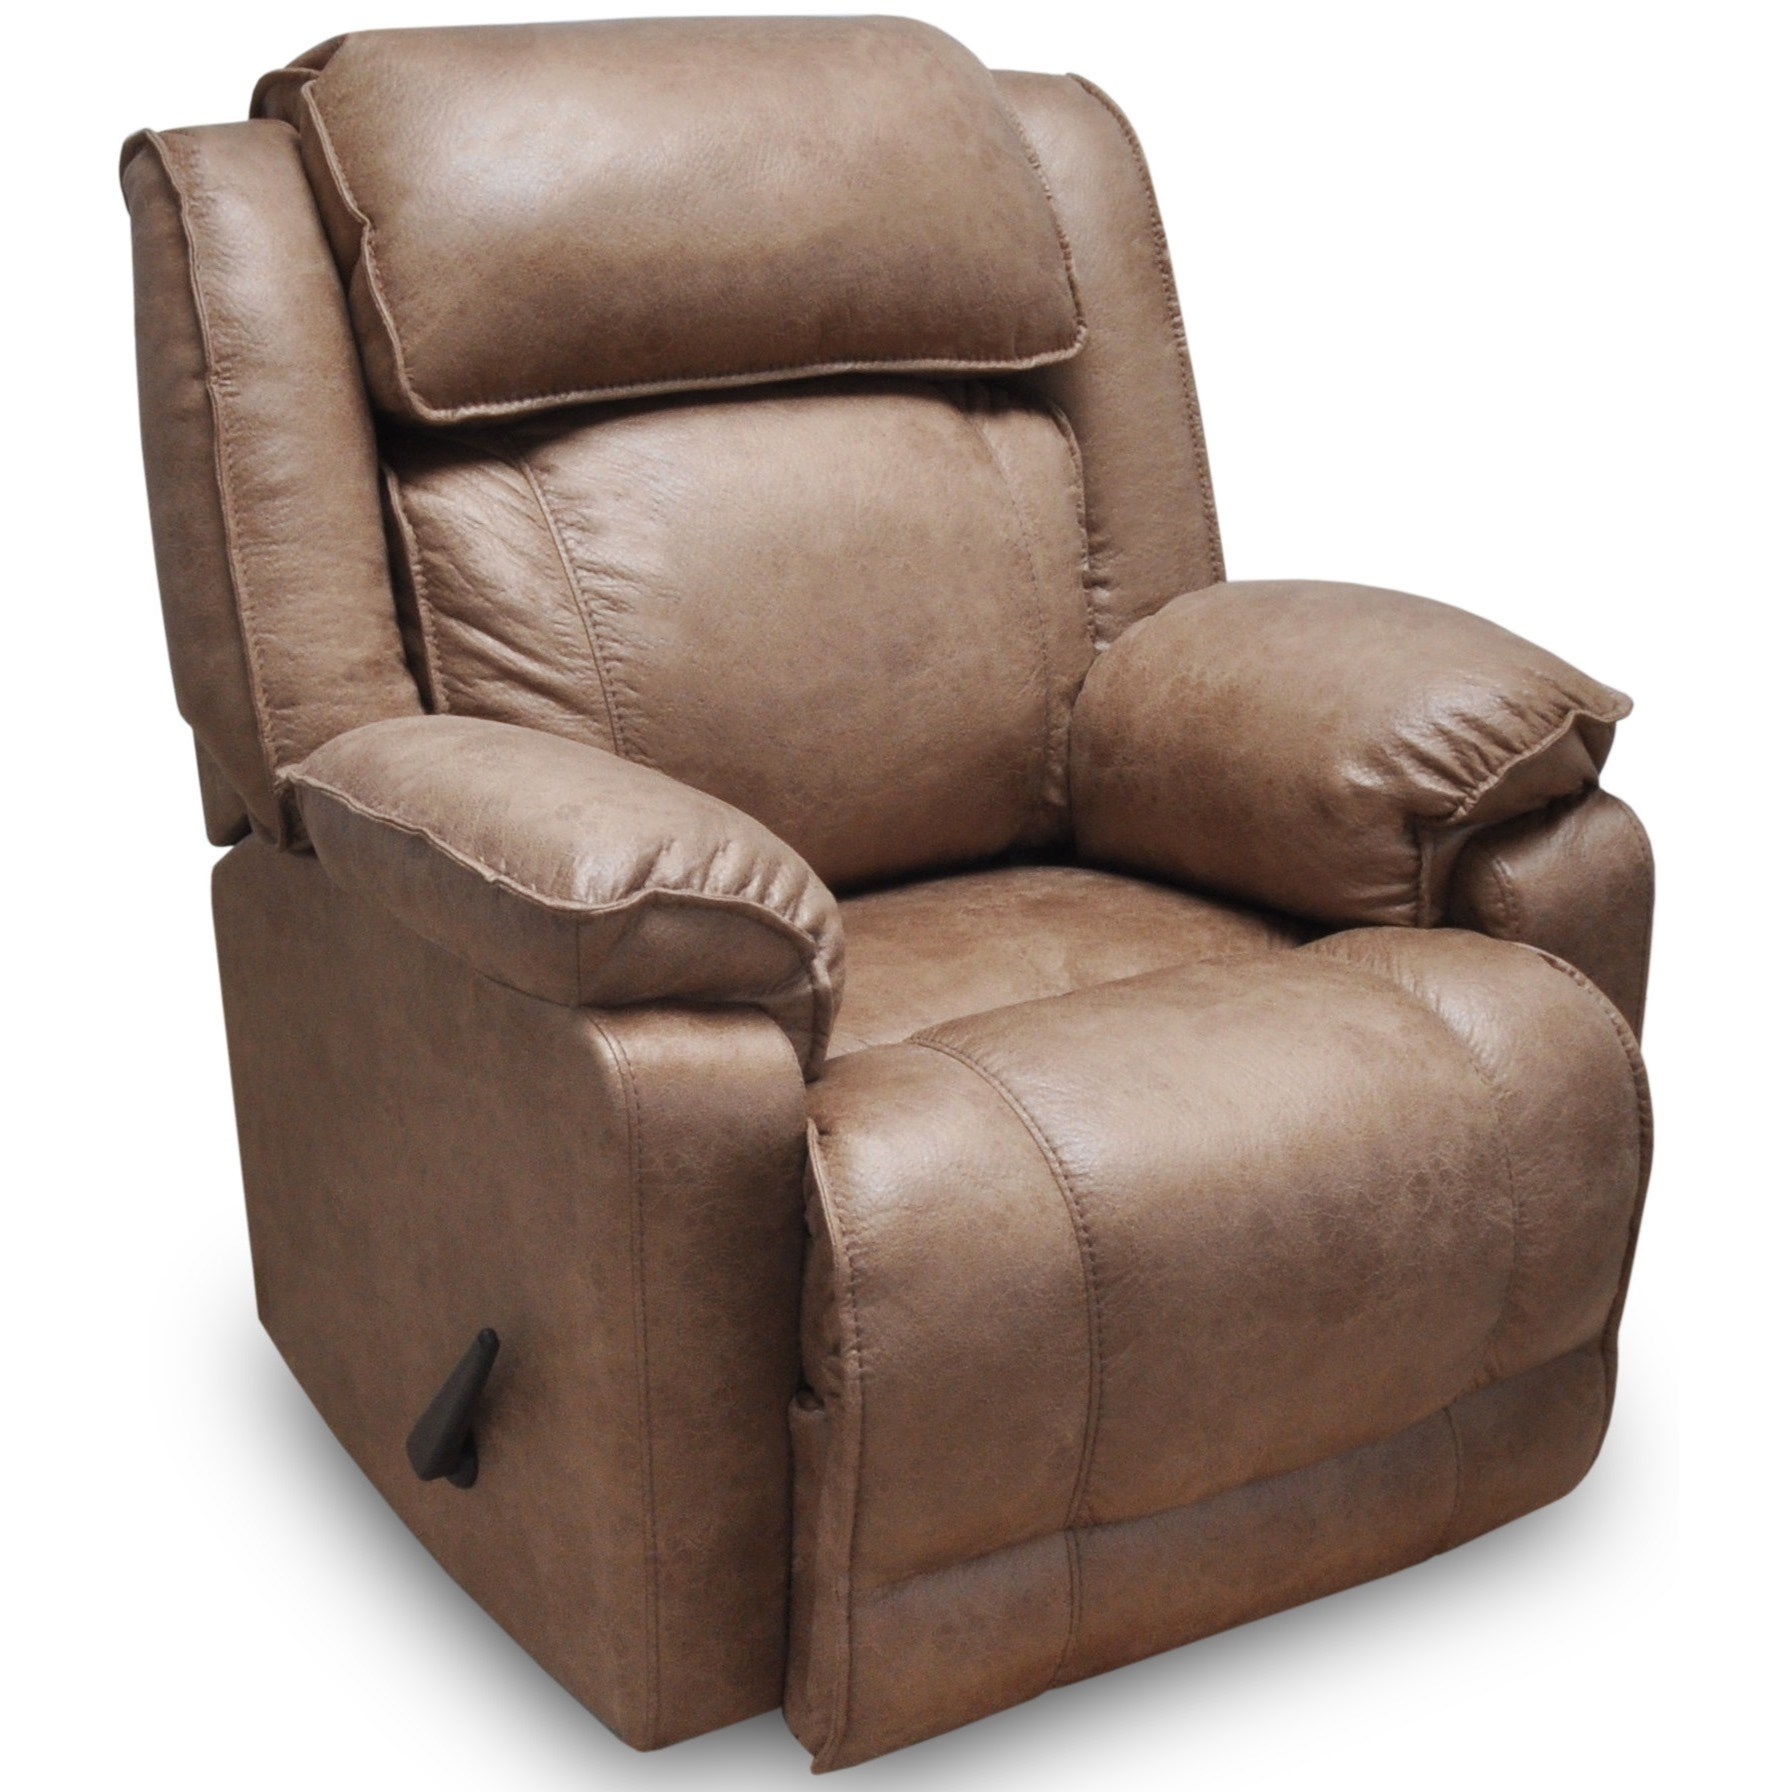 Franklin Marshall Rocker Recliner Virginia Furniture